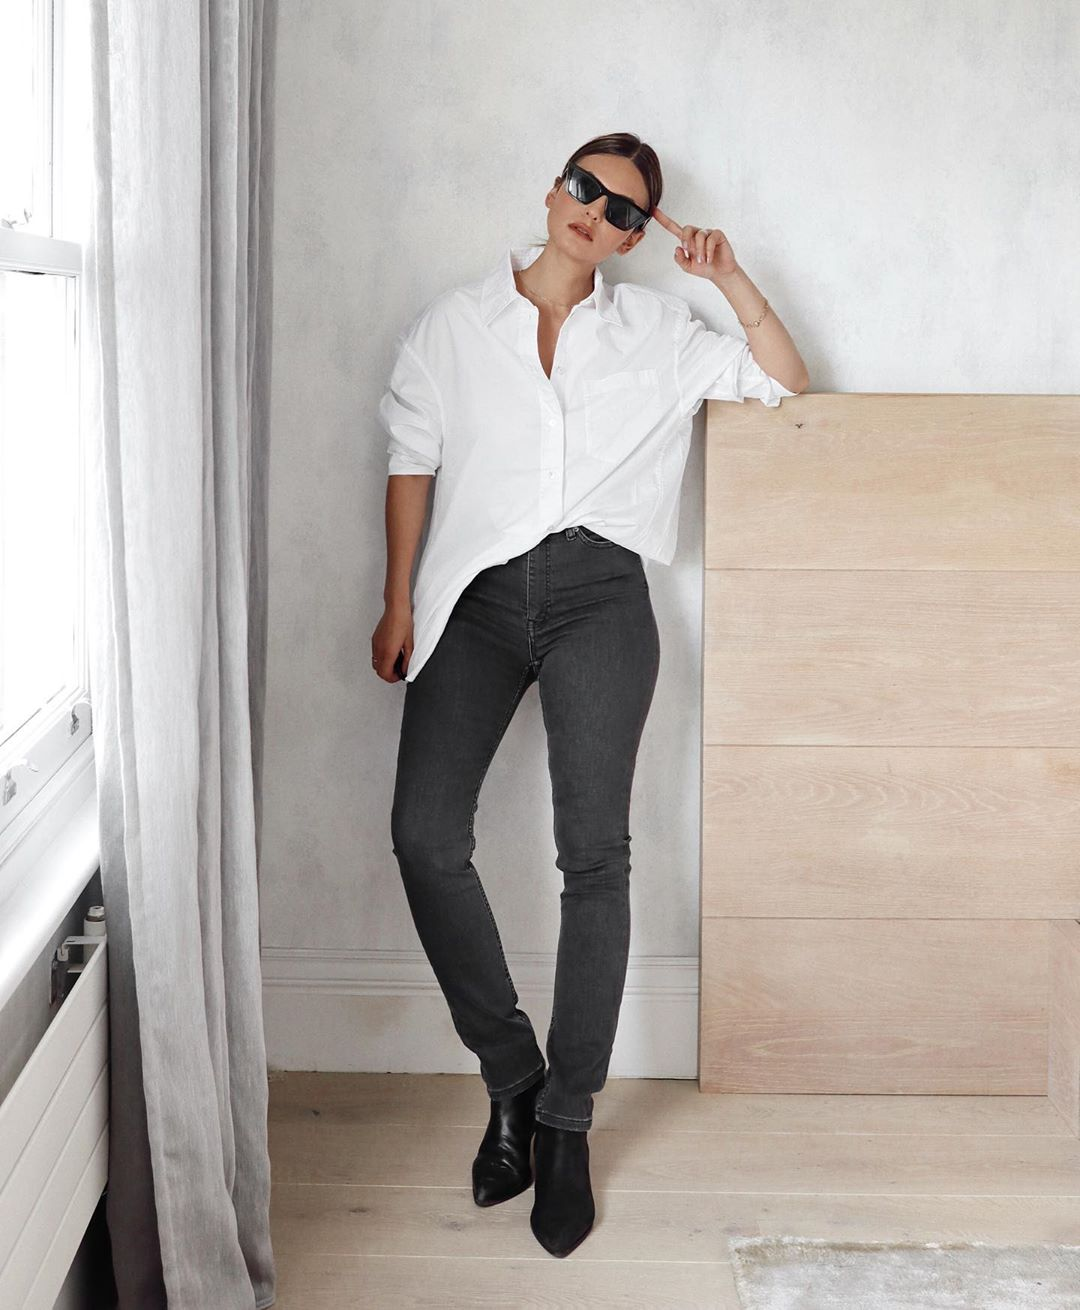 This Minimal Look is One You Can Wear Everywhere